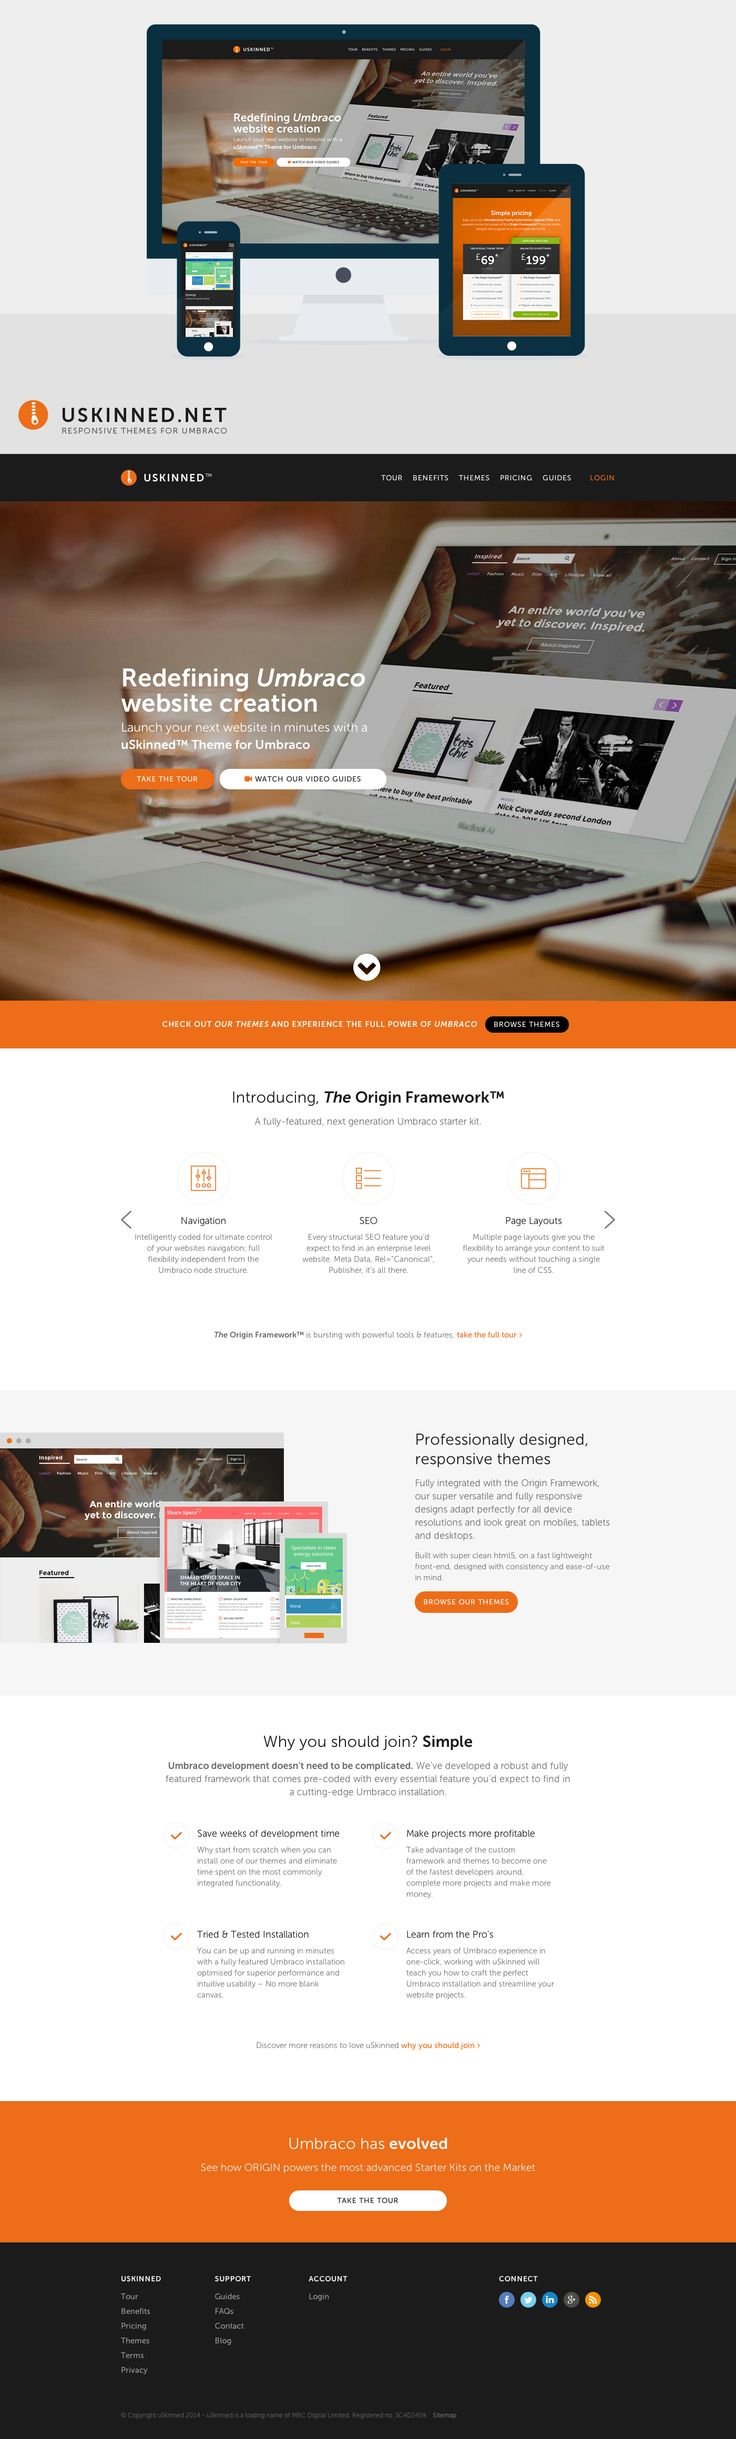 Redefining Umbraco website creation: Launch your next website in minutes with a uSkinned™ Theme for Umbraco.  https://uskinned.net/  #responsive #umbraco #themes